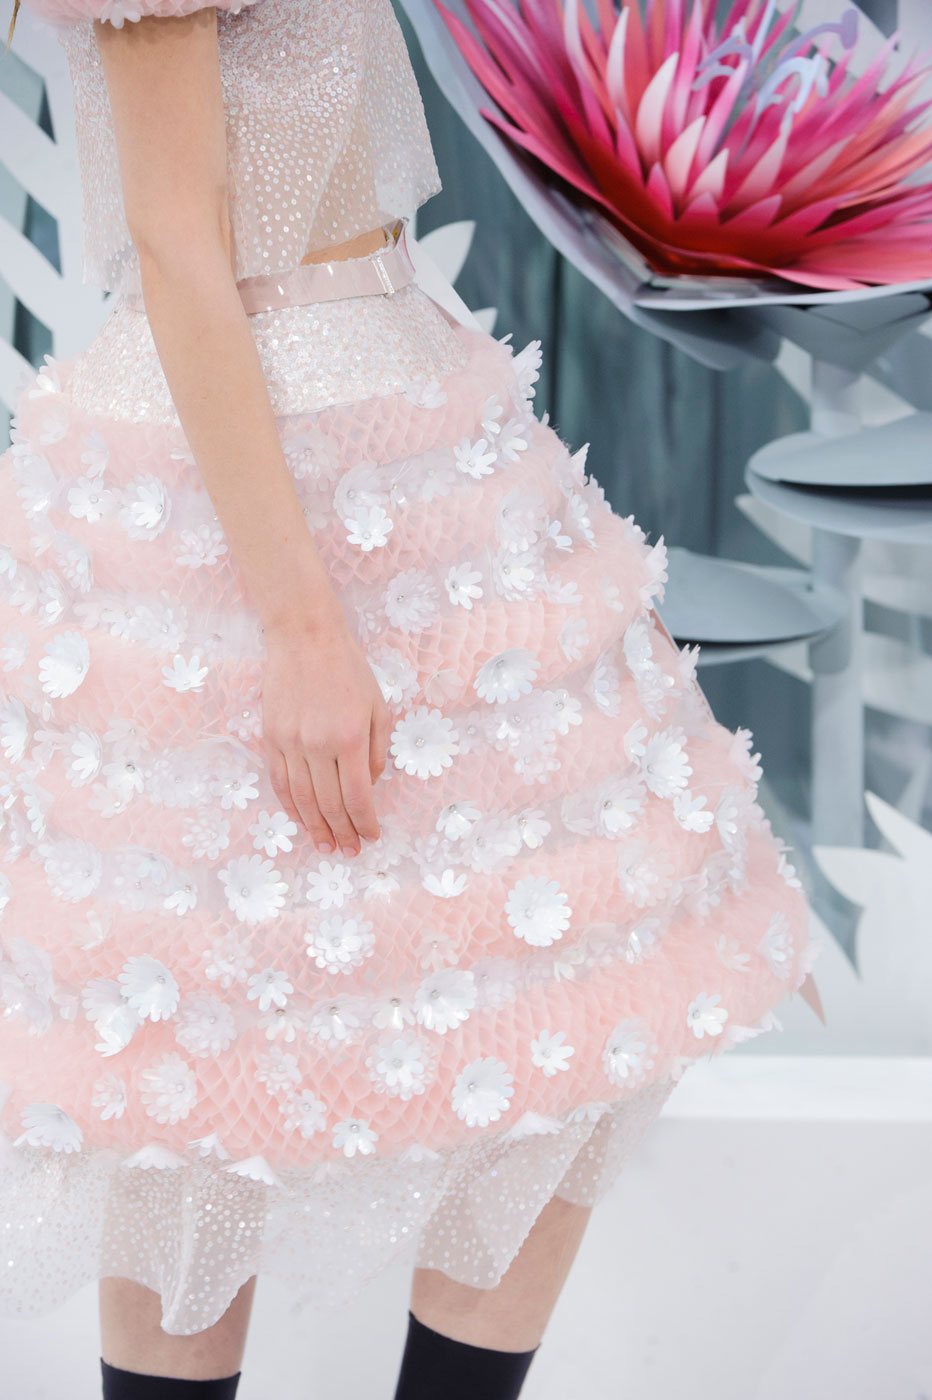 Chanel-fashion-runway-show-close-ups-haute-couture-paris-spring-summer-2015-the-impression-143